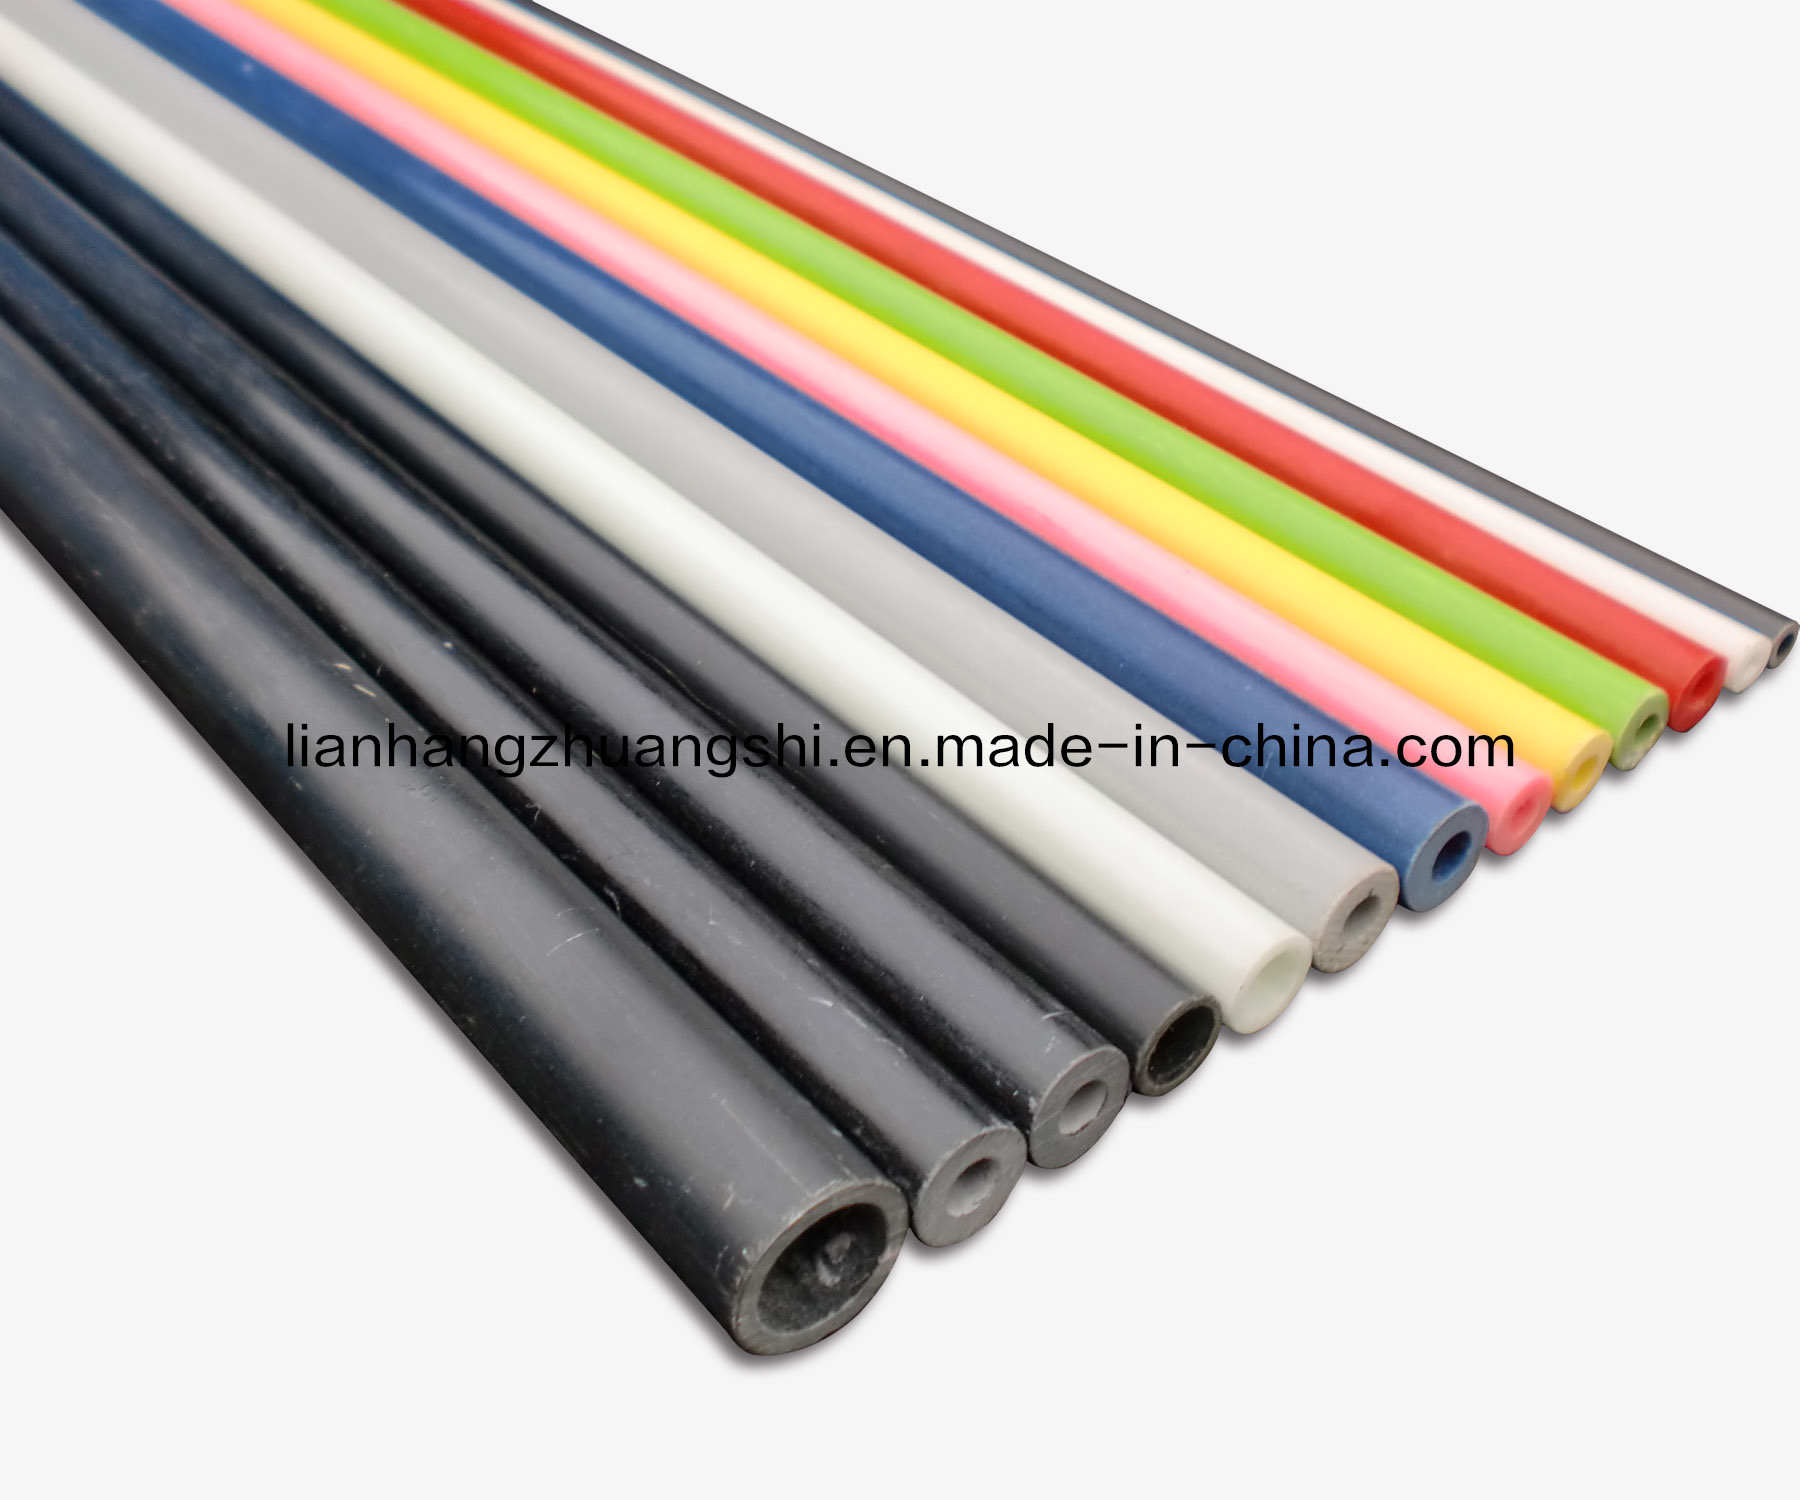 Glass Fiber FRP/GRP Round Tube for Industral